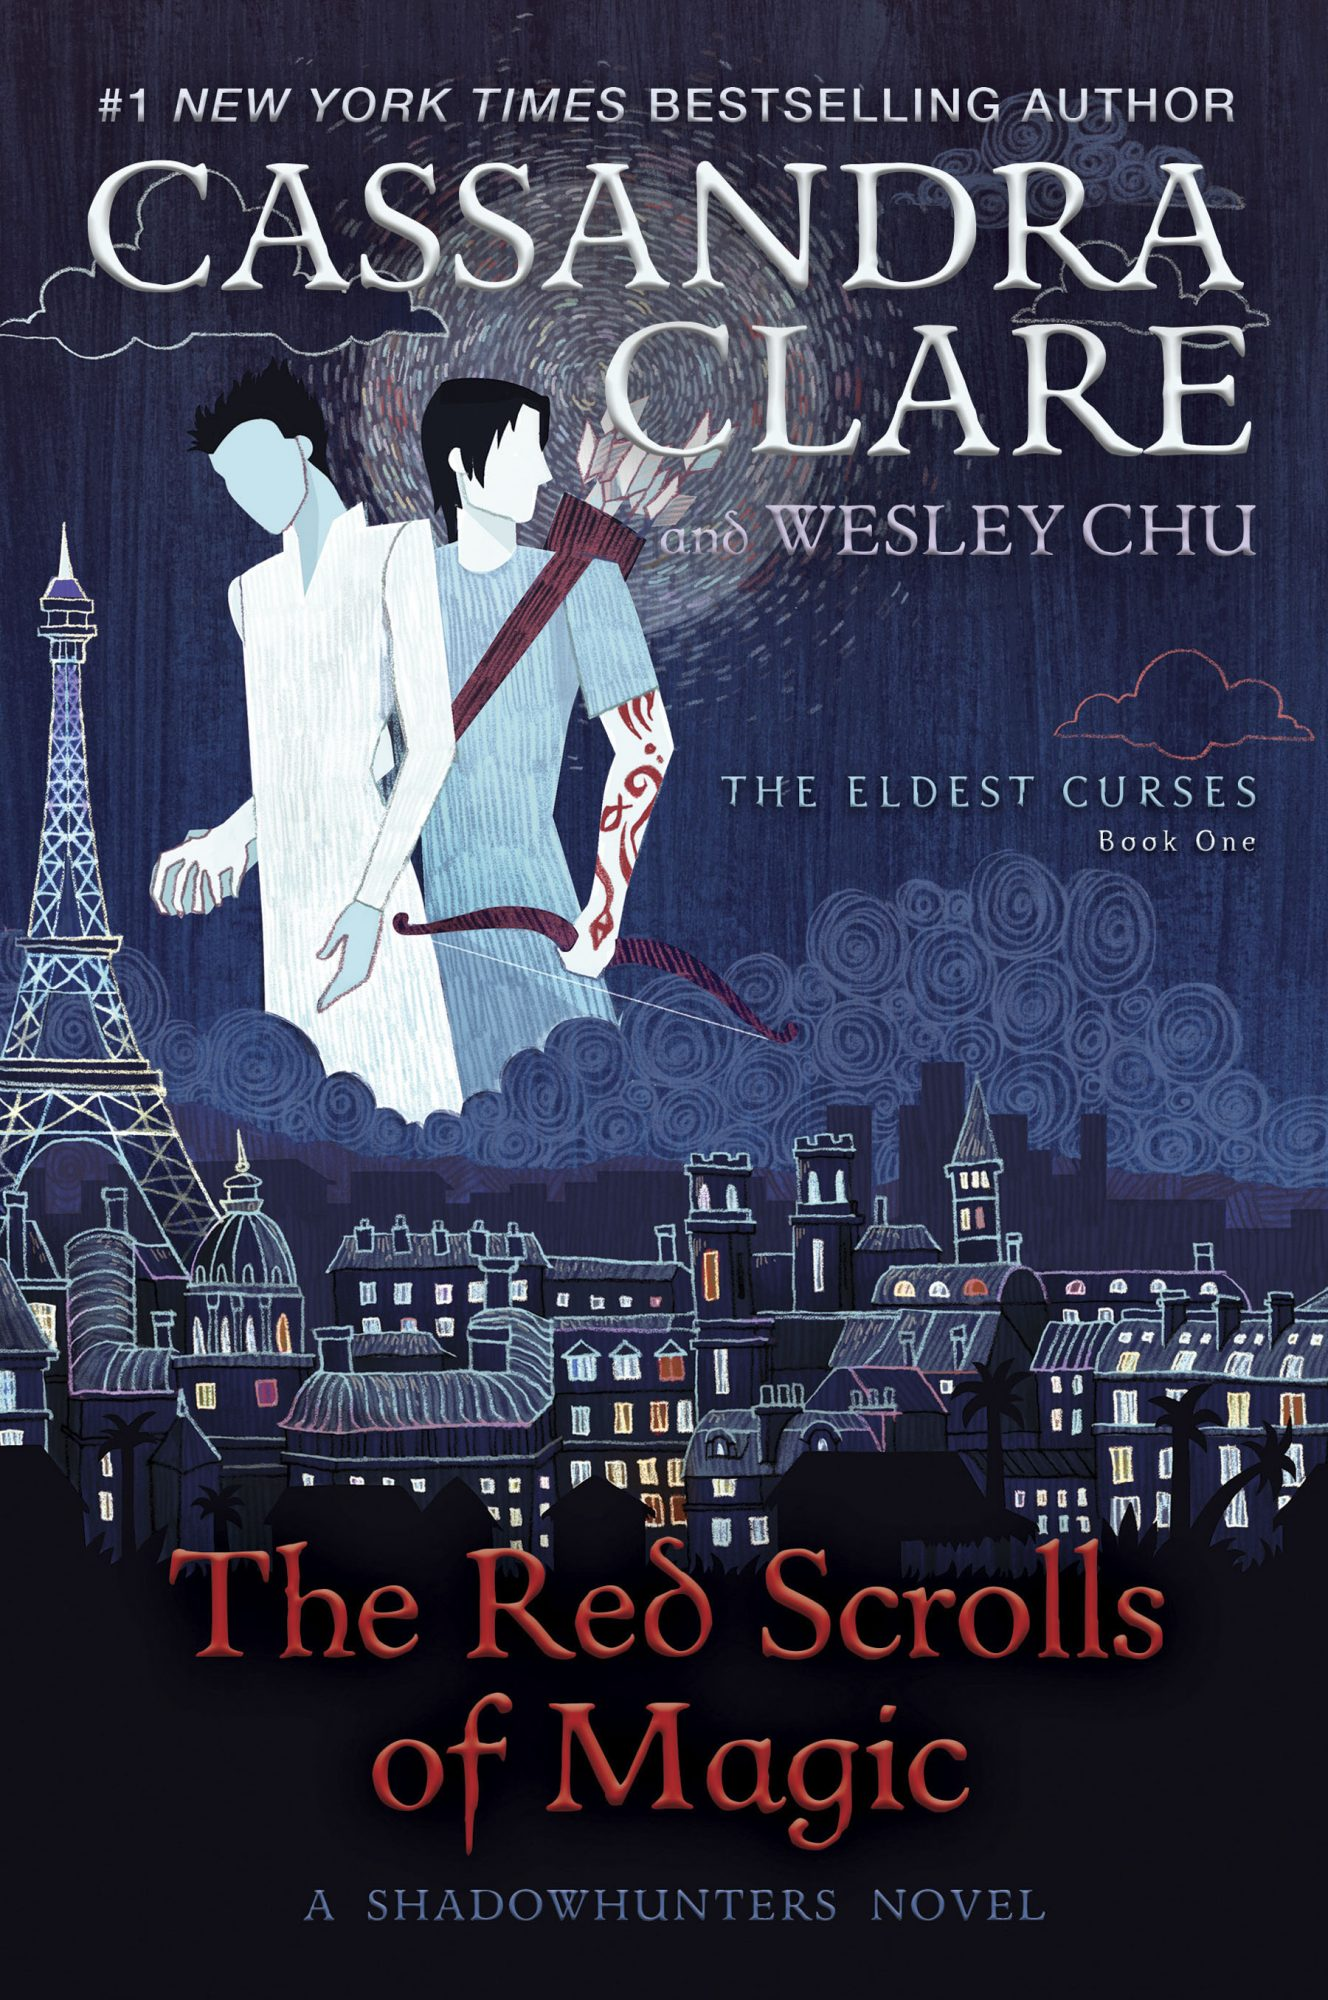 The Red Scrolls of Magic by Cassandra Clare and Wesley Chu CR: Simon & Schuster Children's Publishing